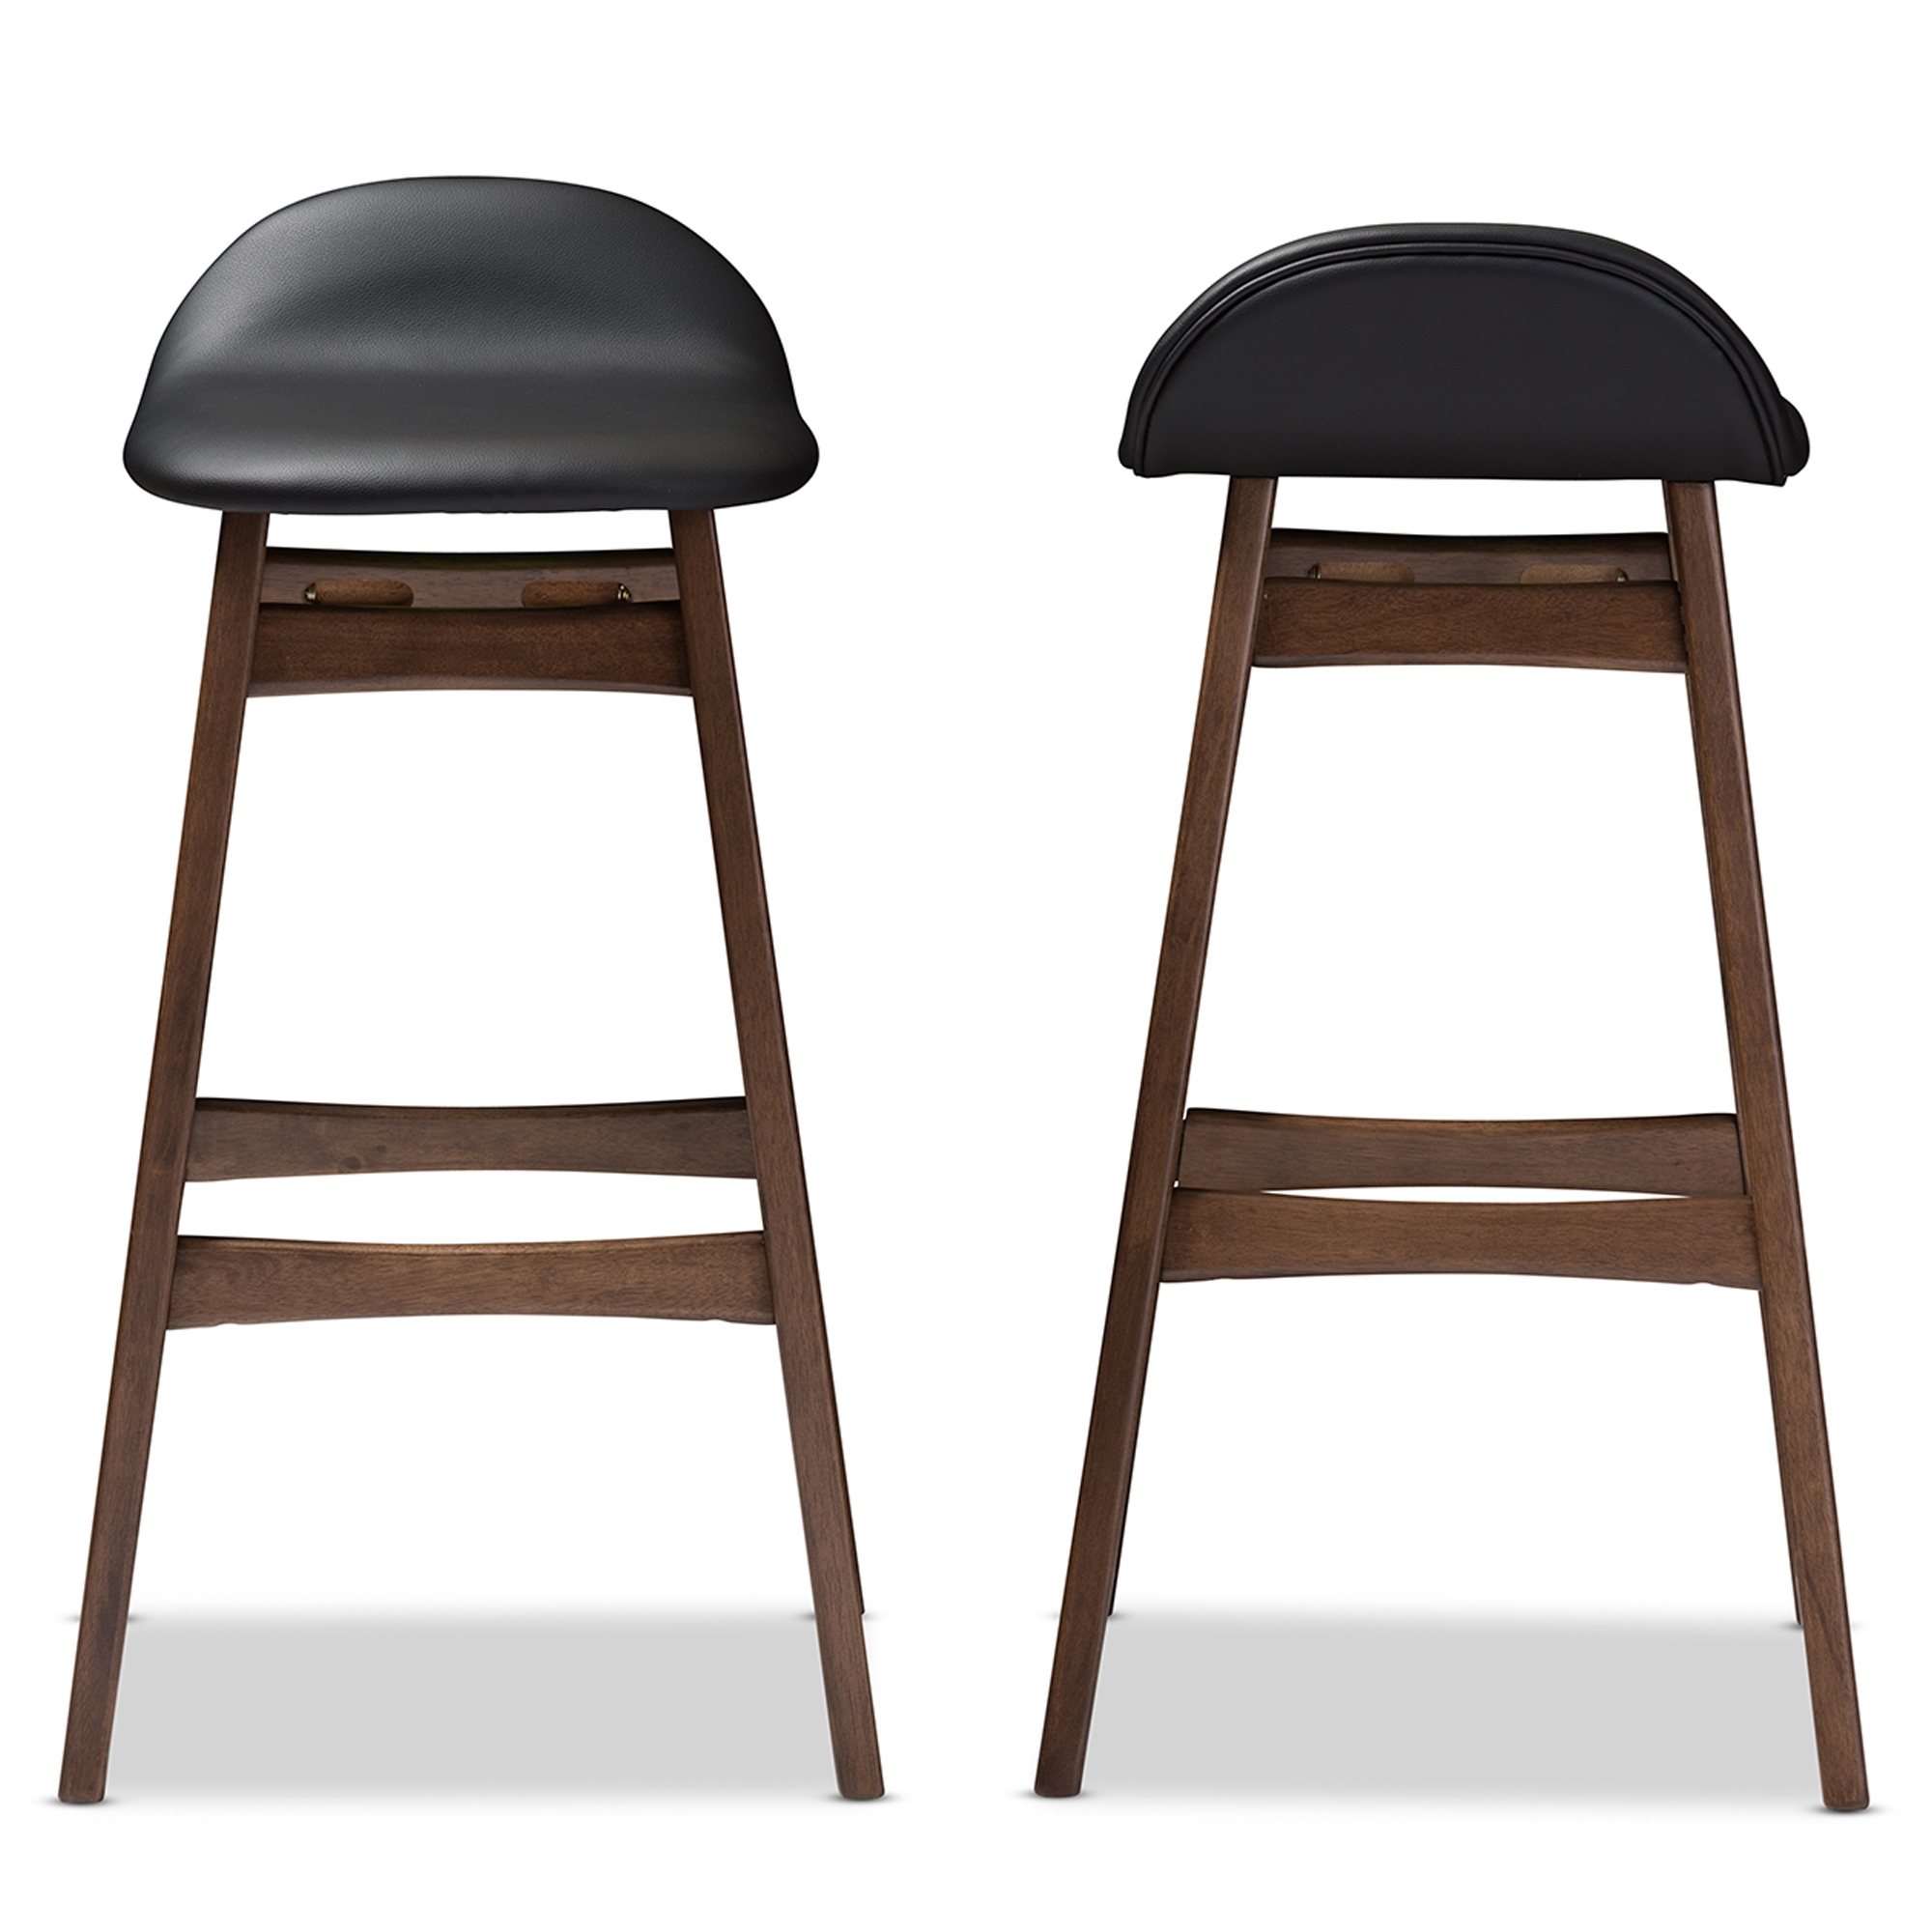 Baxton Studio Bloom Mid-century Retro Modern Scandinavian Style Black Faux Leather Upholstered Walnut Wood Finishing 30-Inches Bar Stool  sc 1 st  Baxton Studio Outlet & Baxton Studio Bloom Mid-century Retro Modern Scandinavian Style ... islam-shia.org